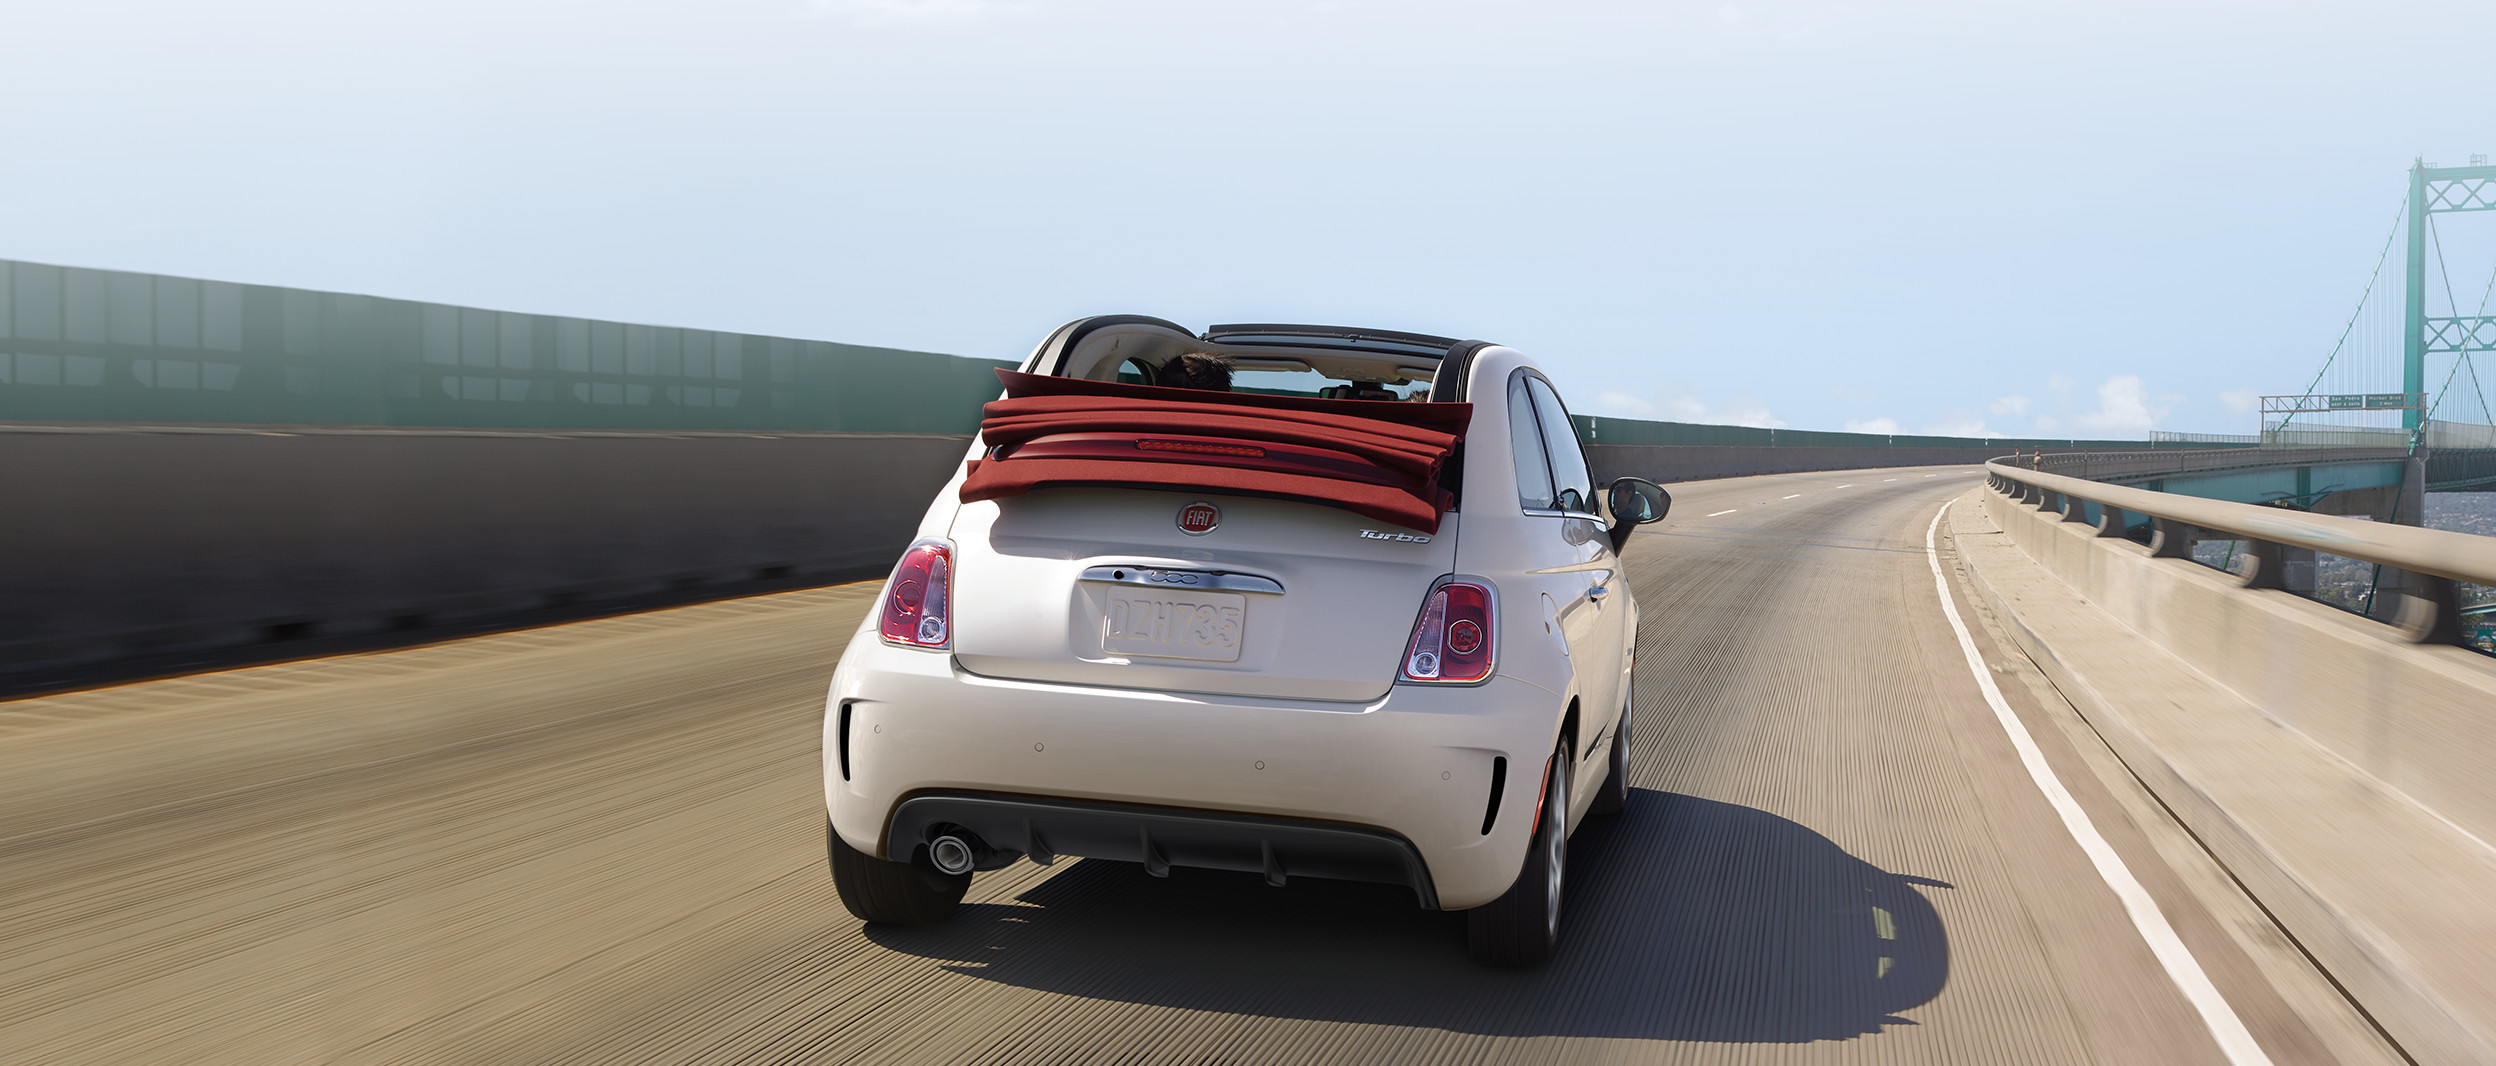 2018 Fiat 500 rear profile with retractable soft top in white